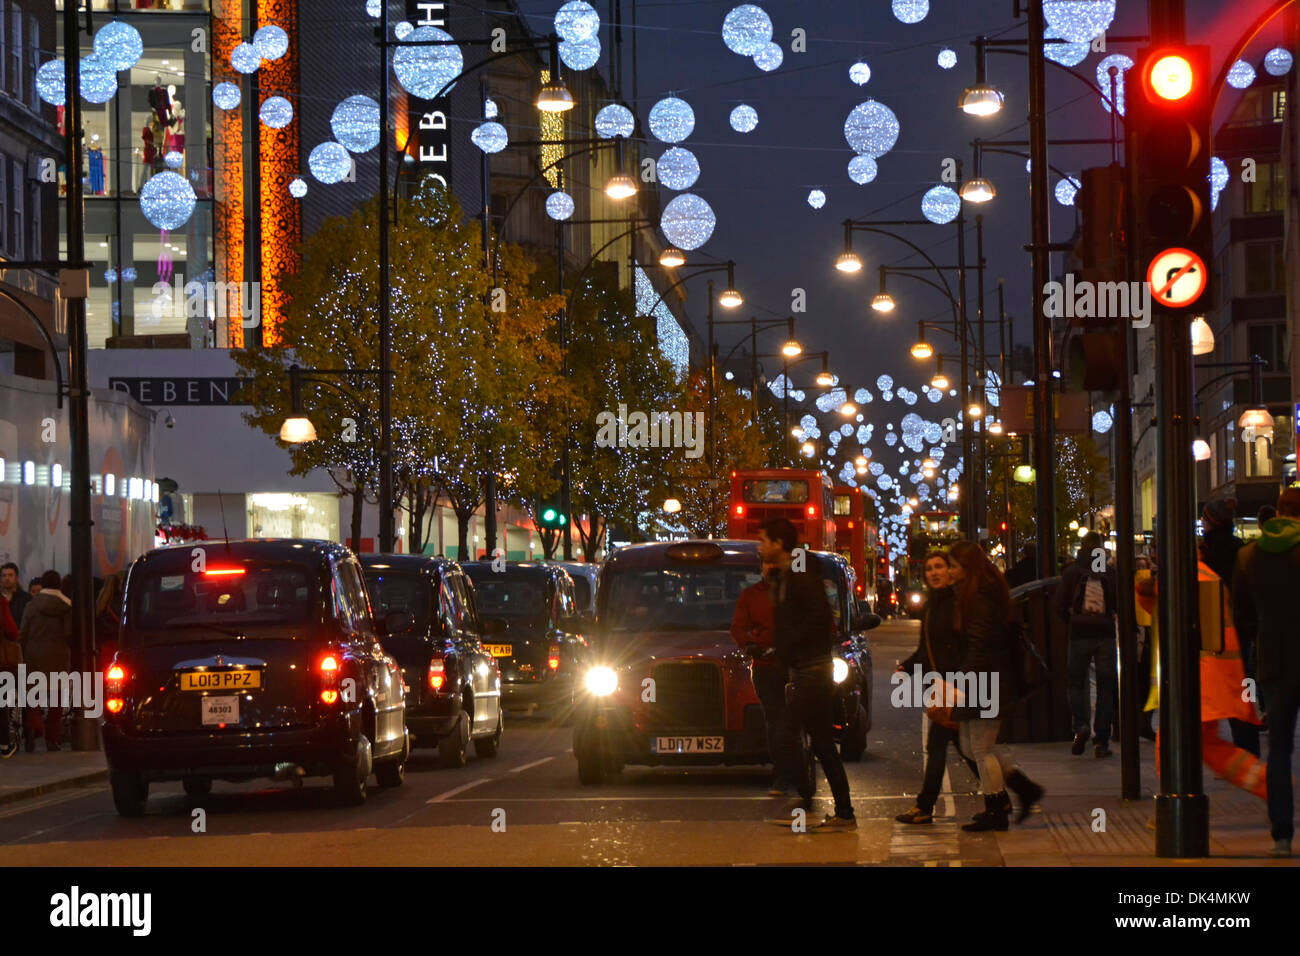 Oxford Street Christmas decorations with taxis and pedestrians - Stock Image